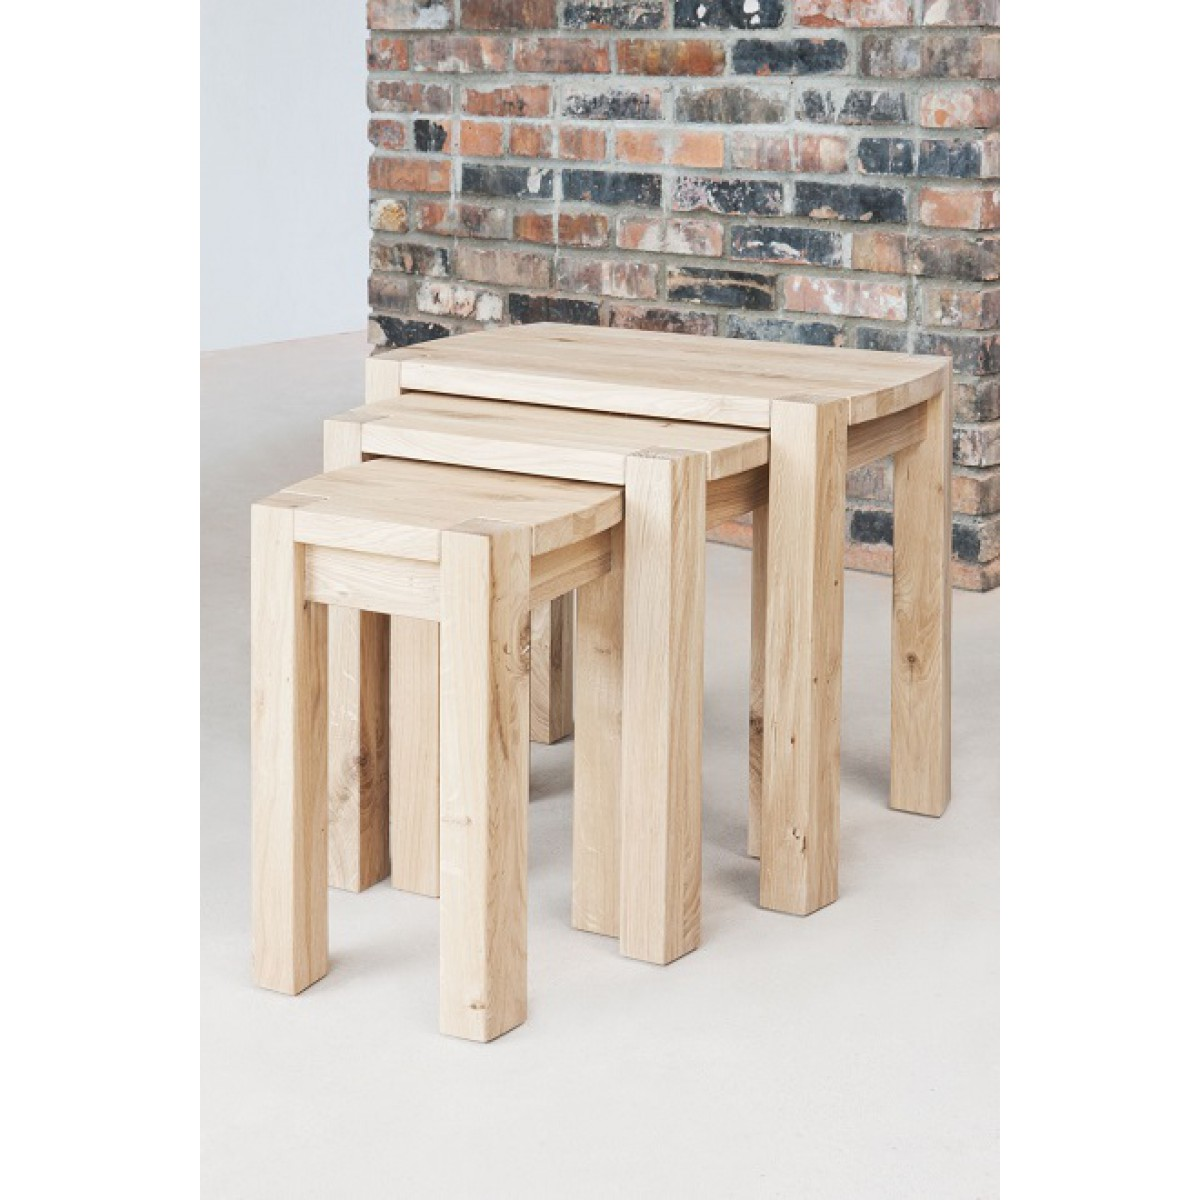 Goliath nest of tables - Goliath console table ...